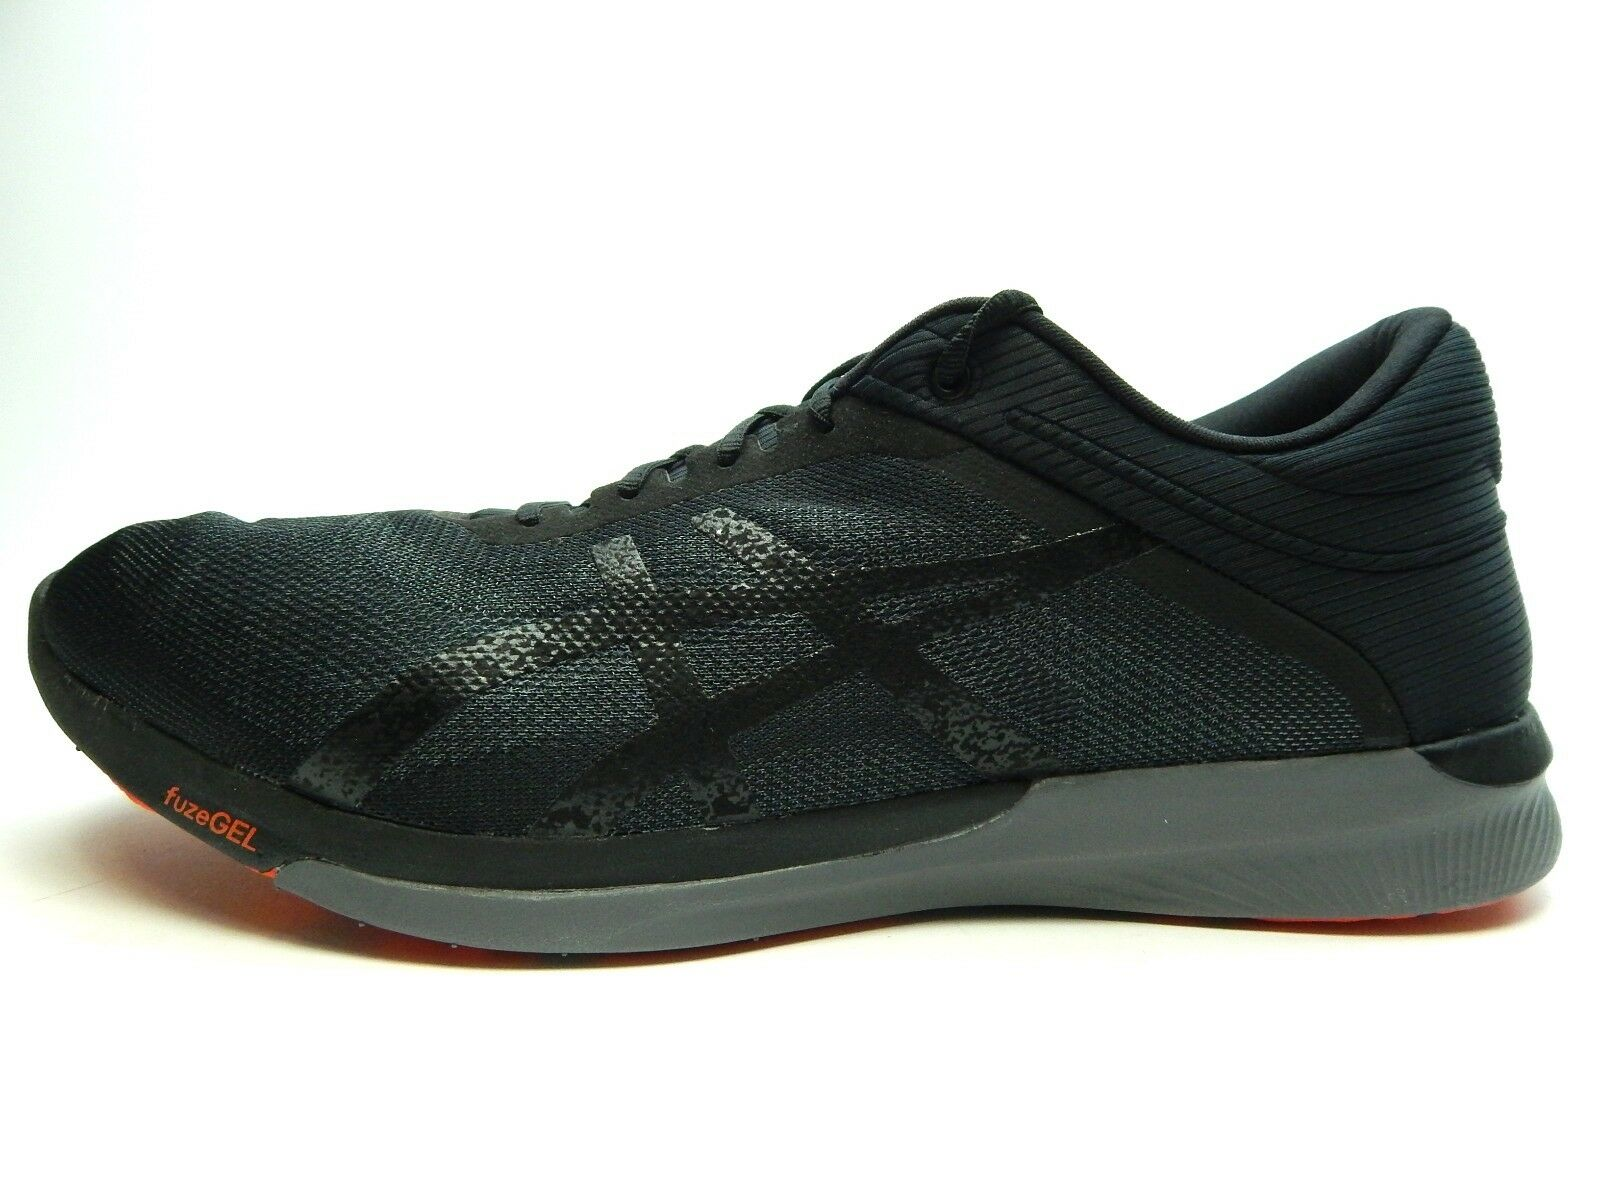 ASICS fuzex Rush t718n 9097 Carbono Zapatos Negro tomate cherry Hombre Zapatos Carbono Tamaño 14 542a2d